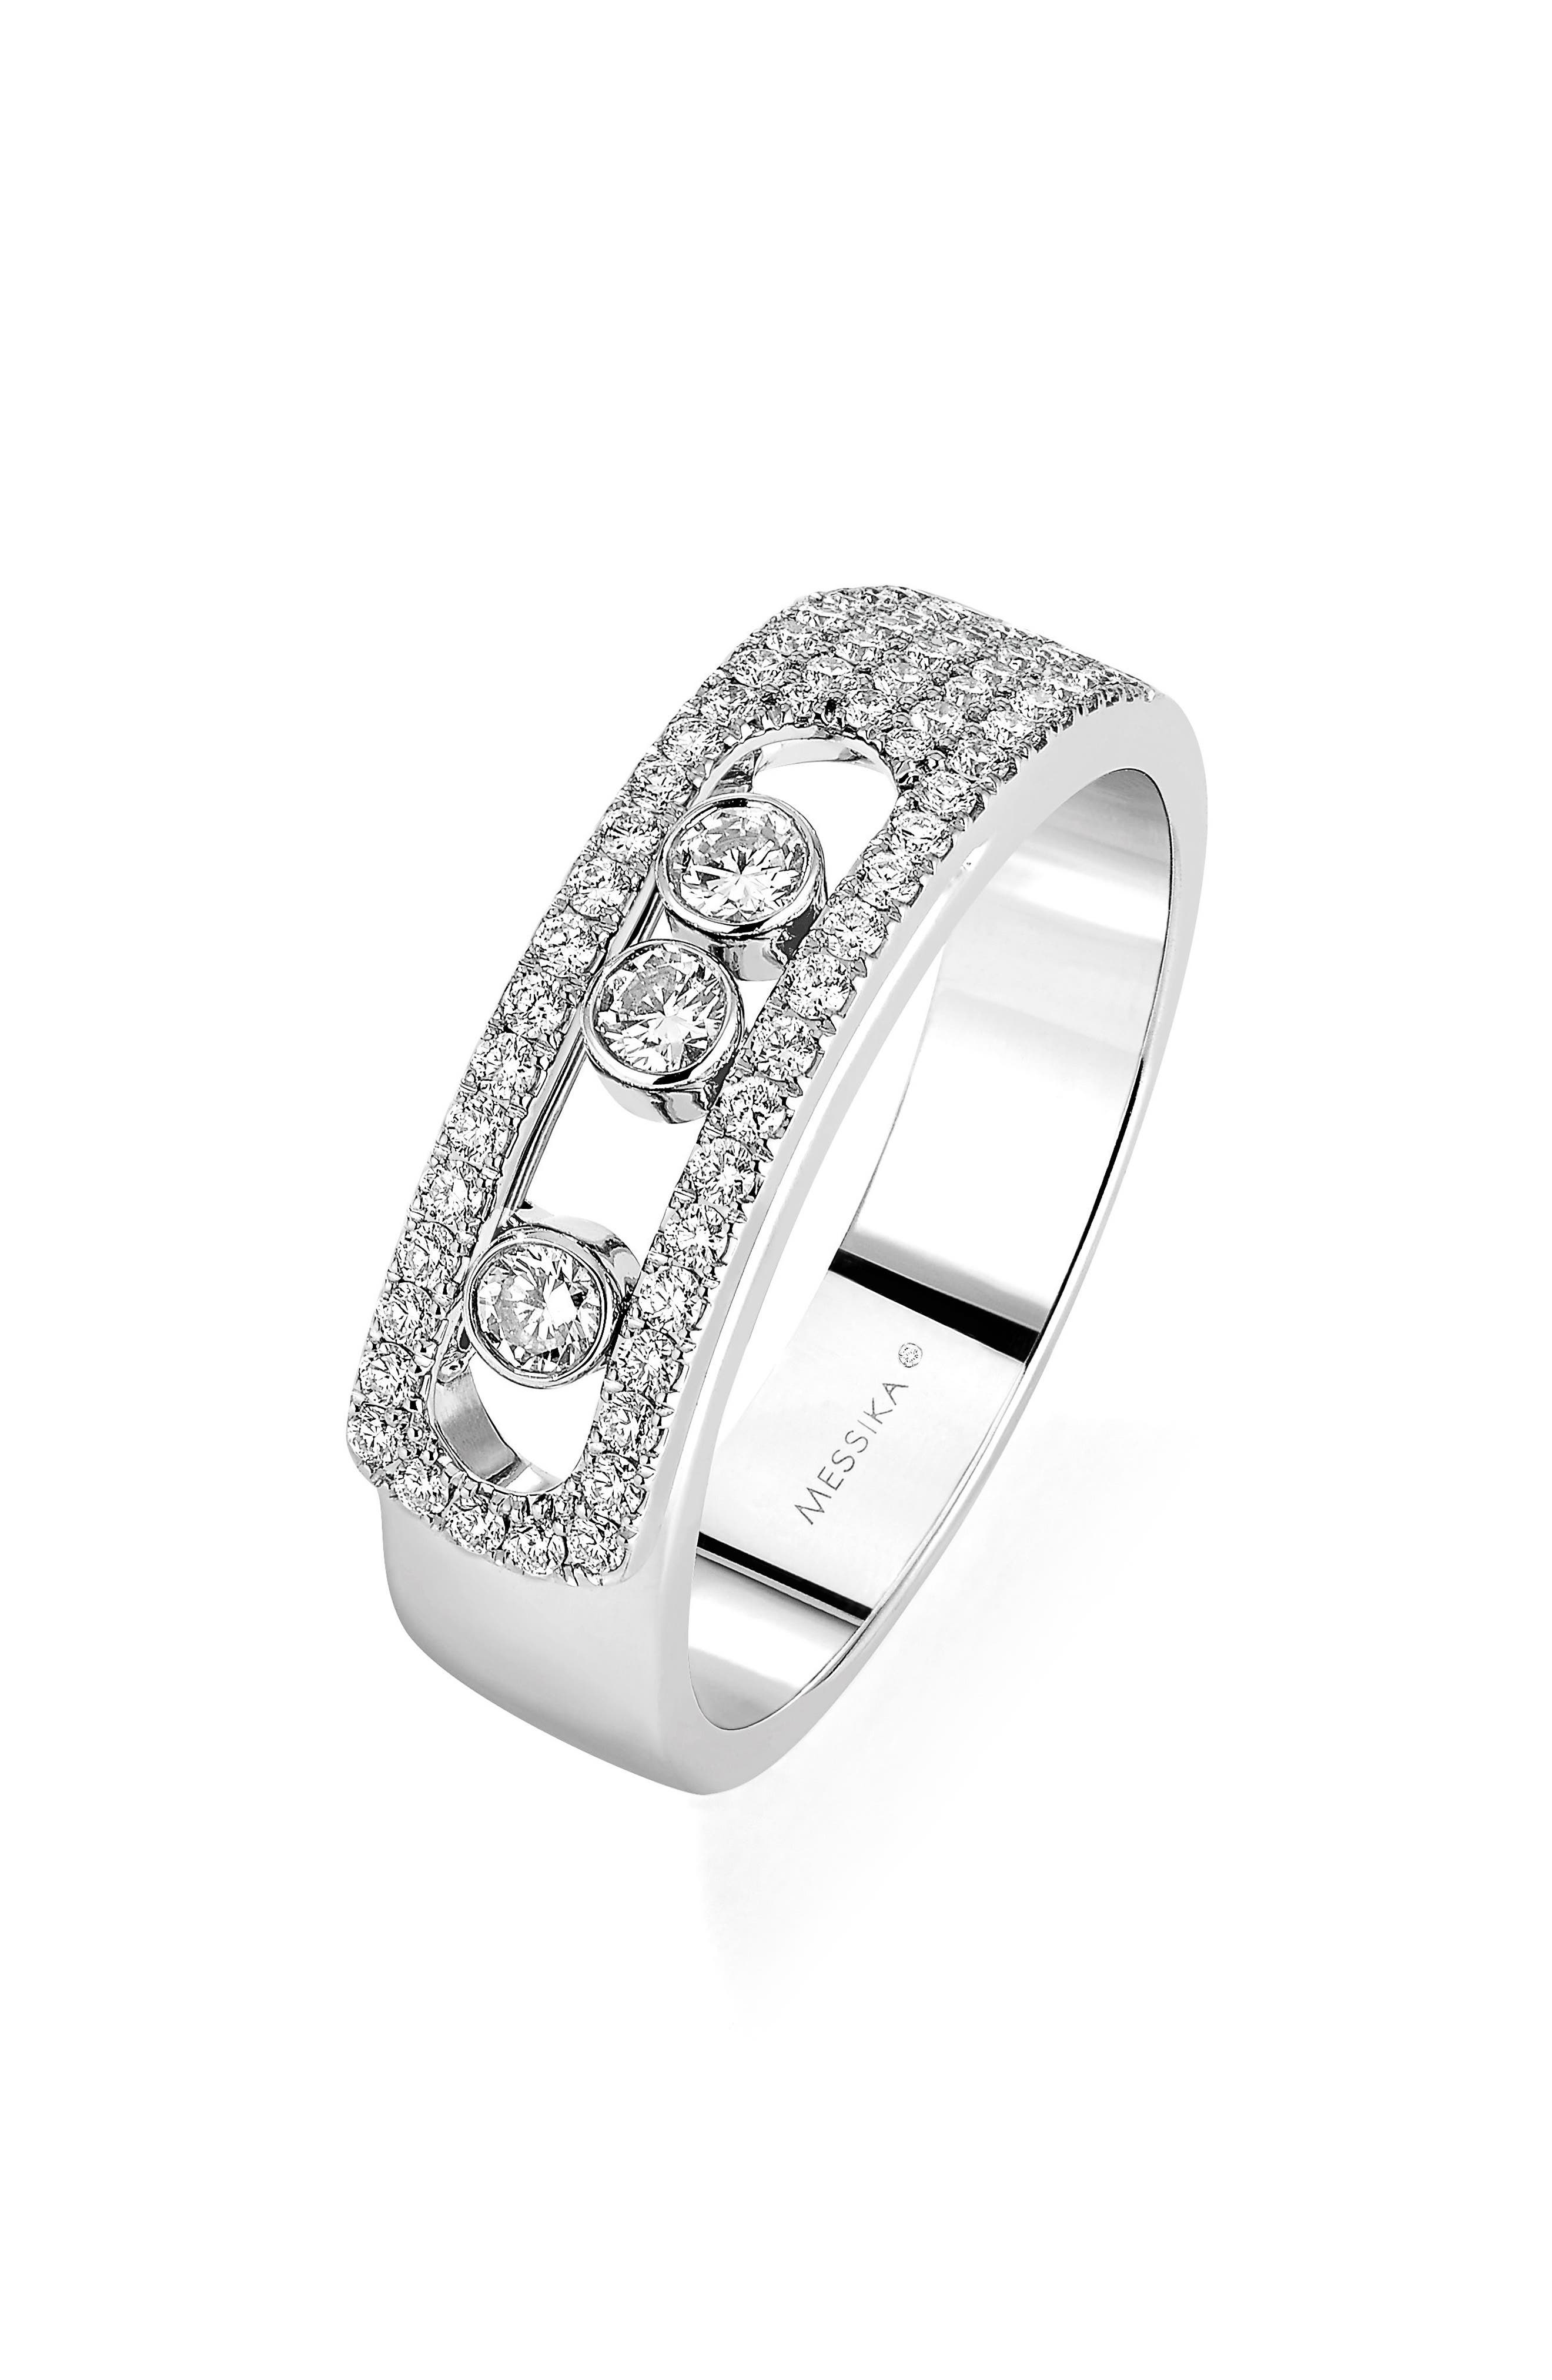 Move Noa Diamond Ring,                         Main,                         color, WHITE GOLD